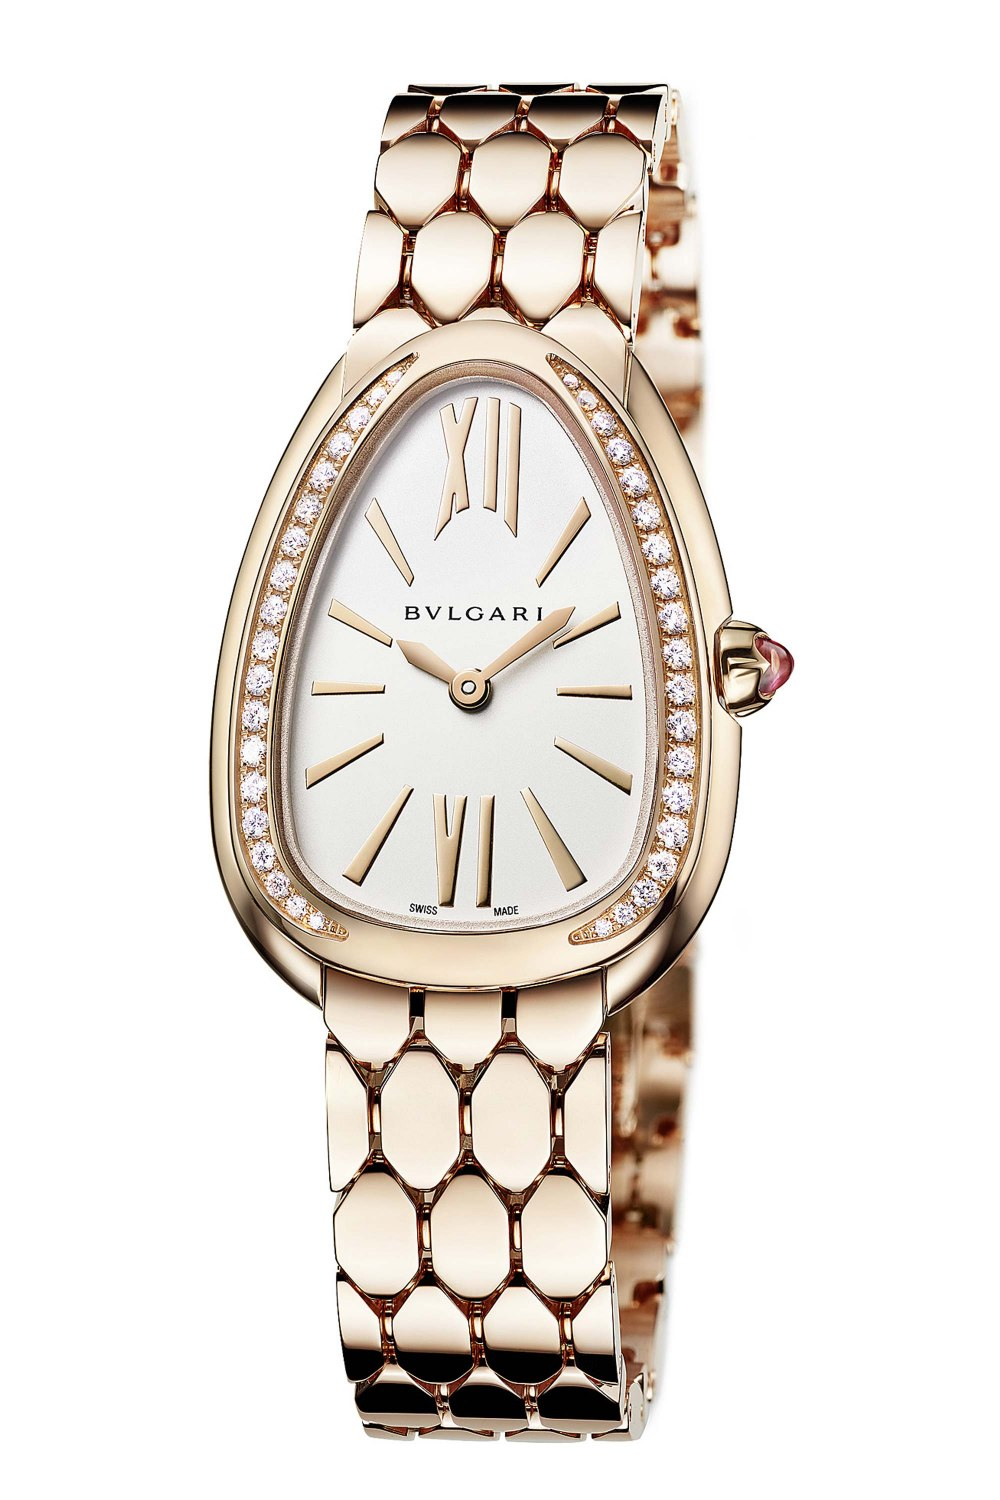 BULGARI Serpenti Seduttori Rose Gold Diamonds 103146